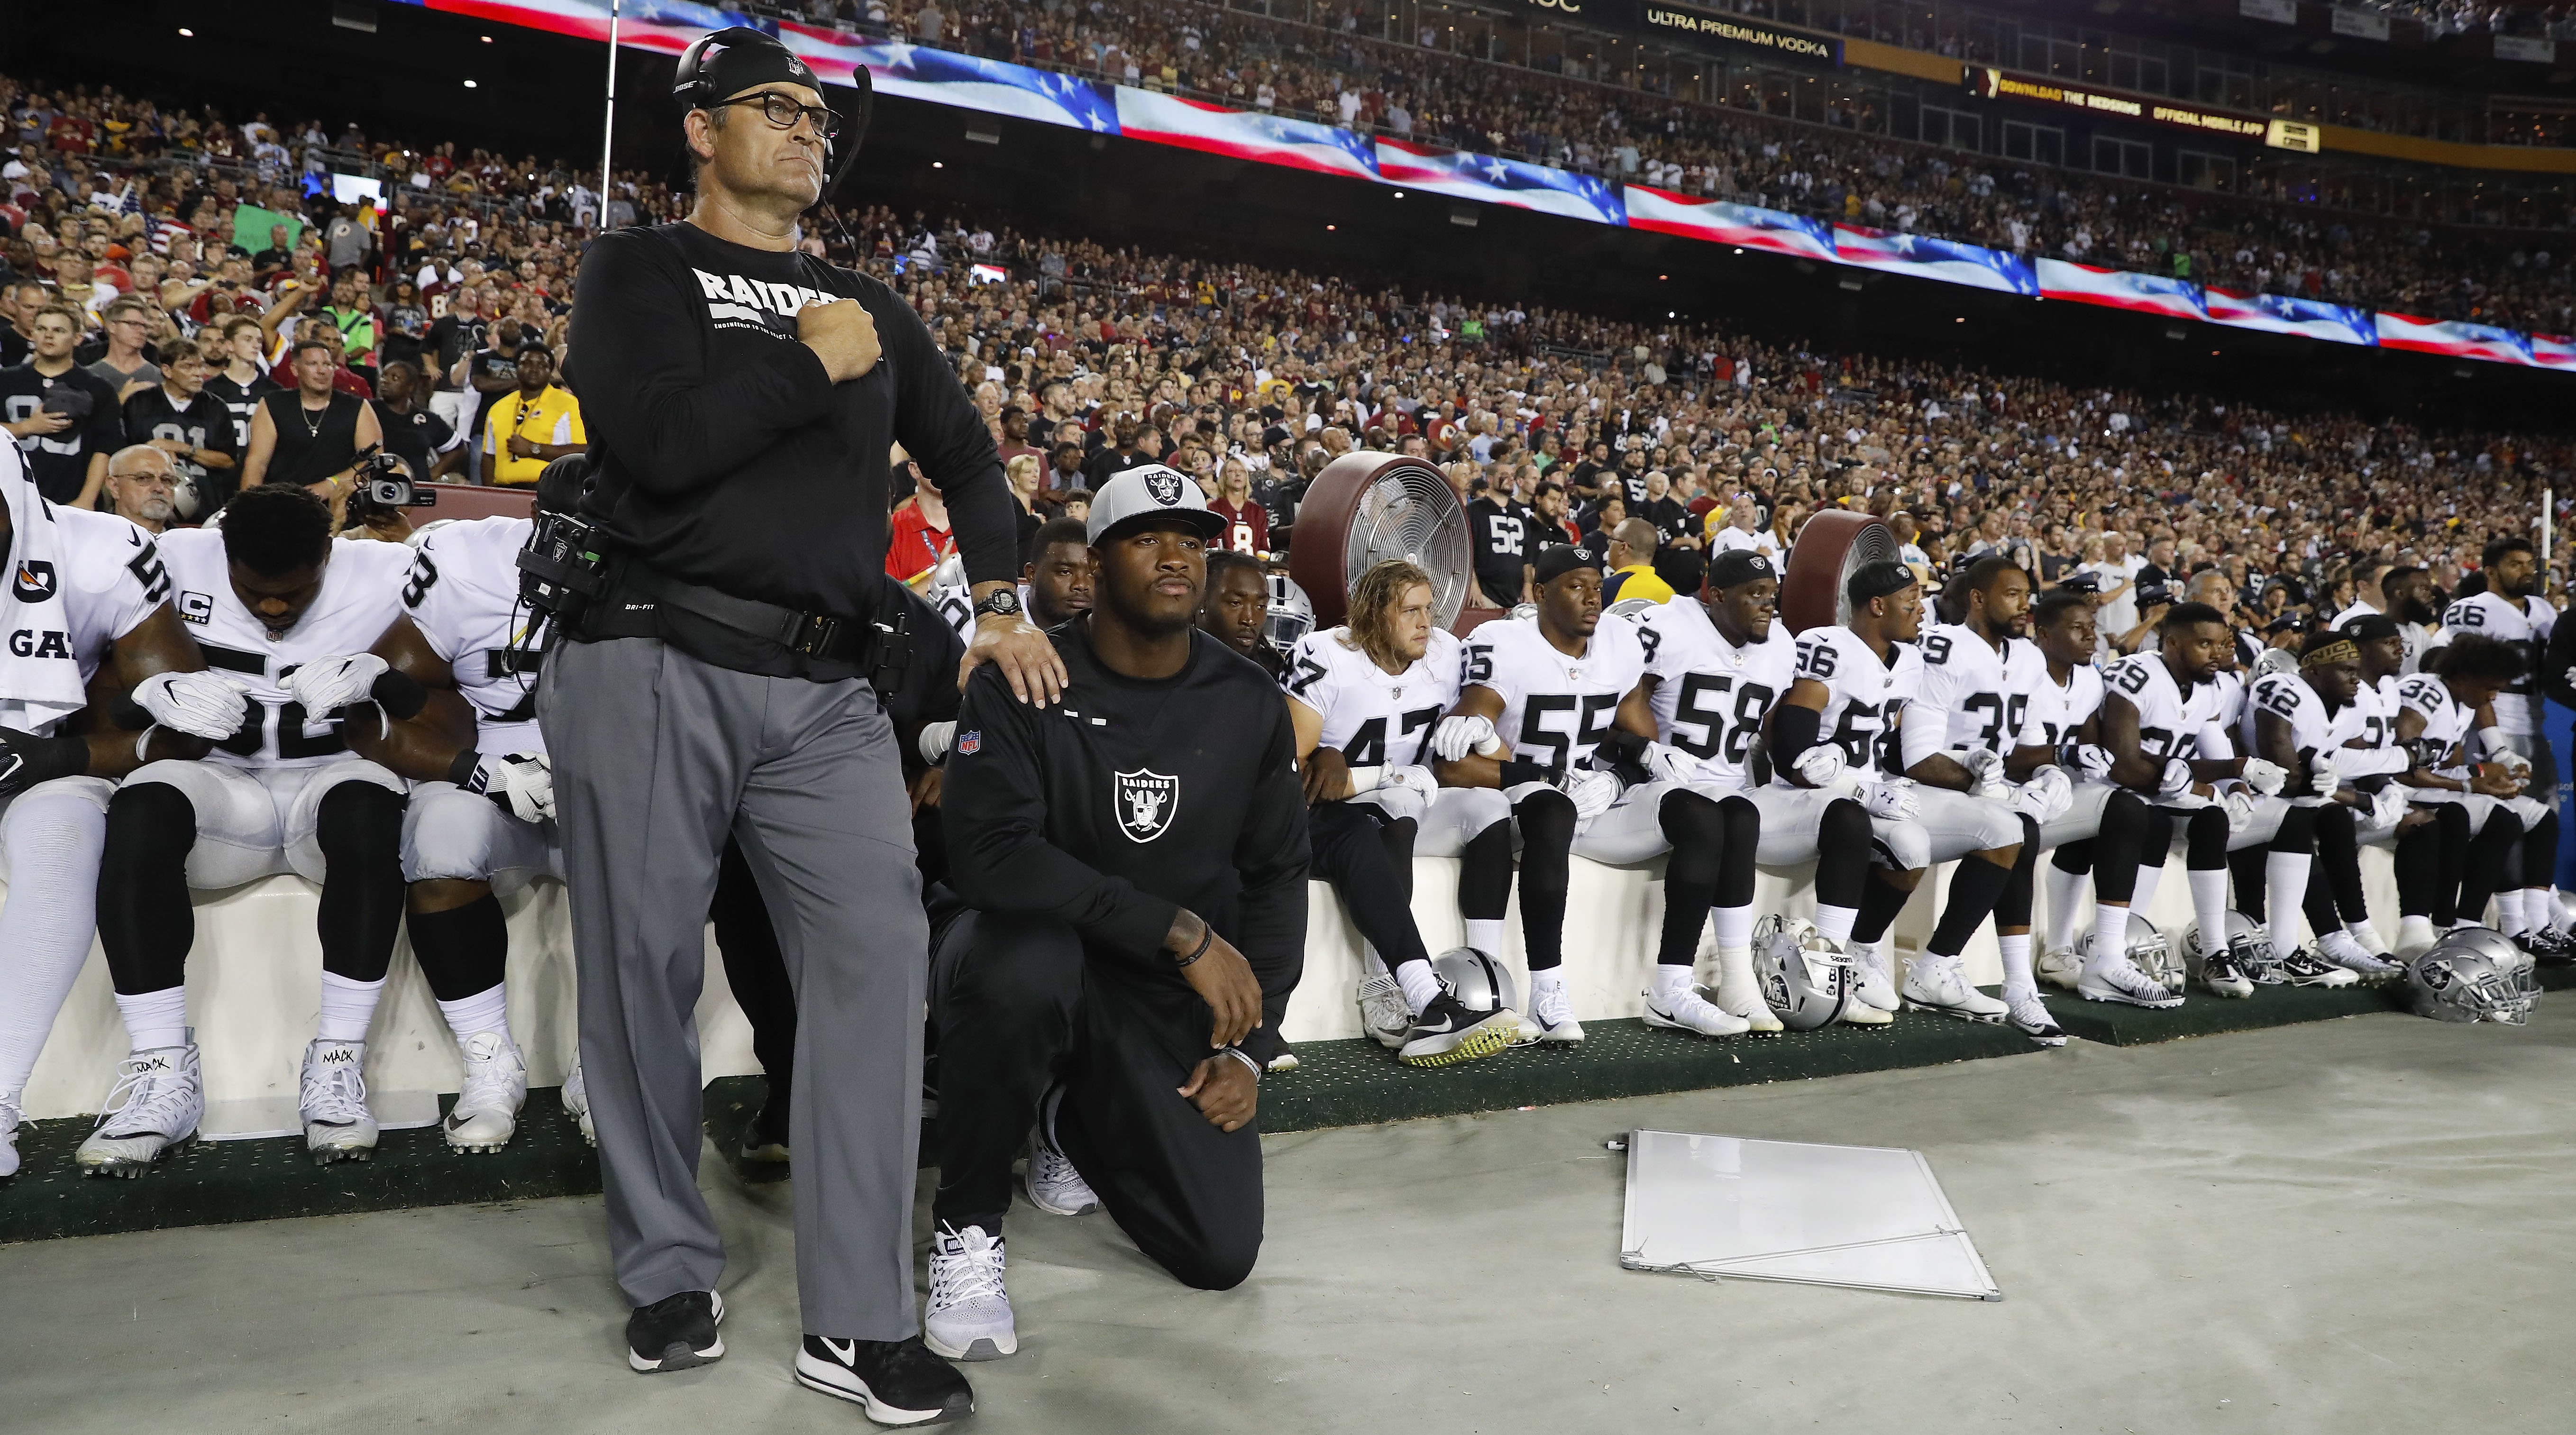 raiders national anthem protest majority of team stays seated si com